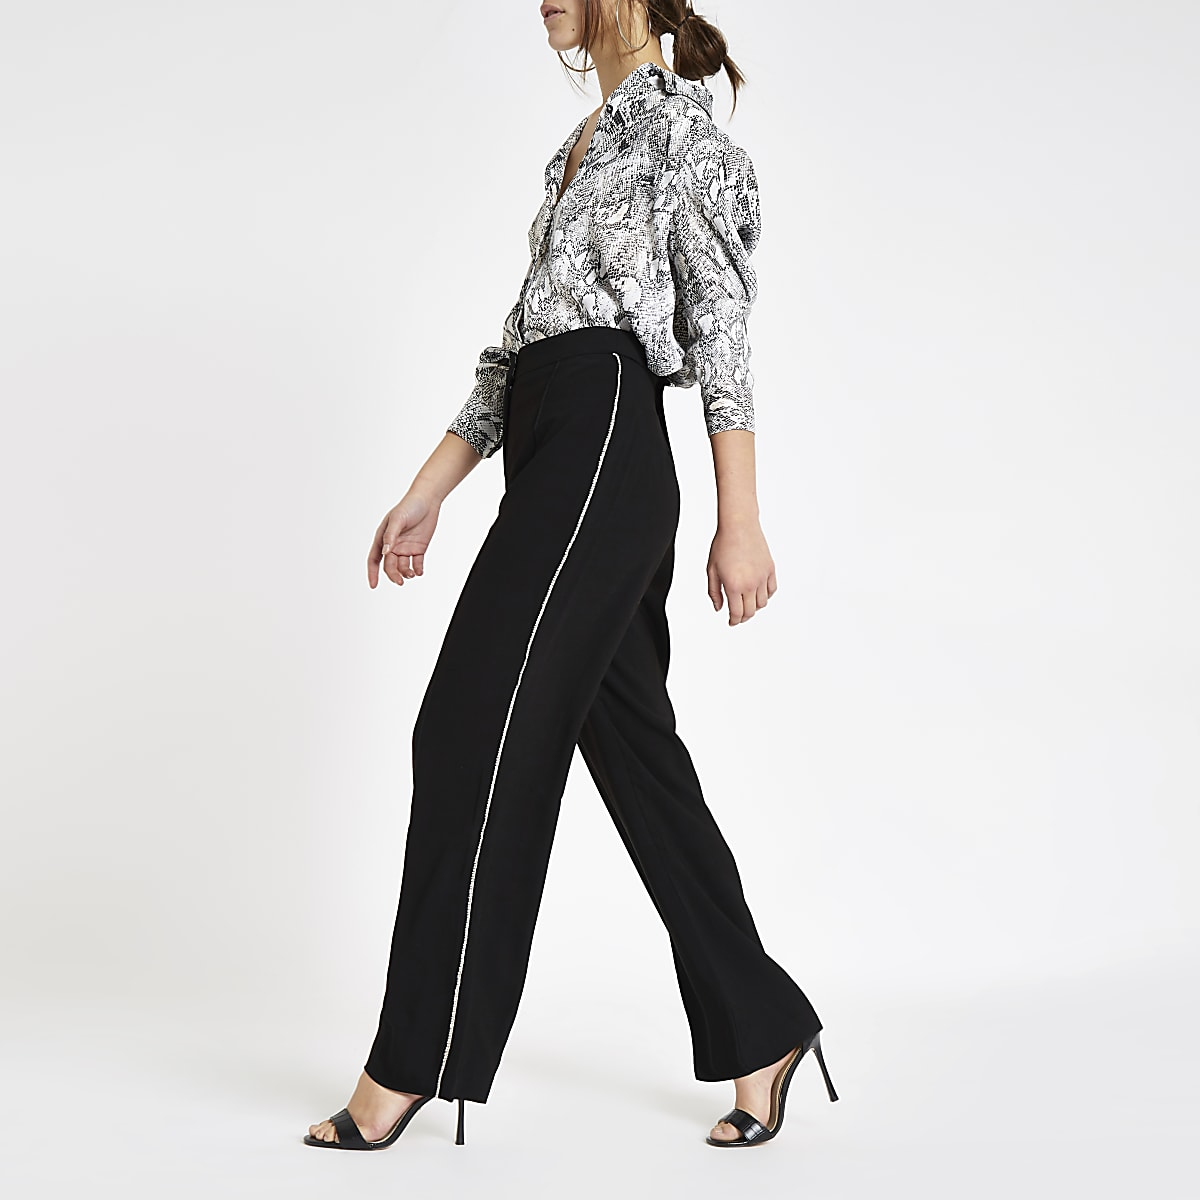 Petite black diamante side wide leg trousers